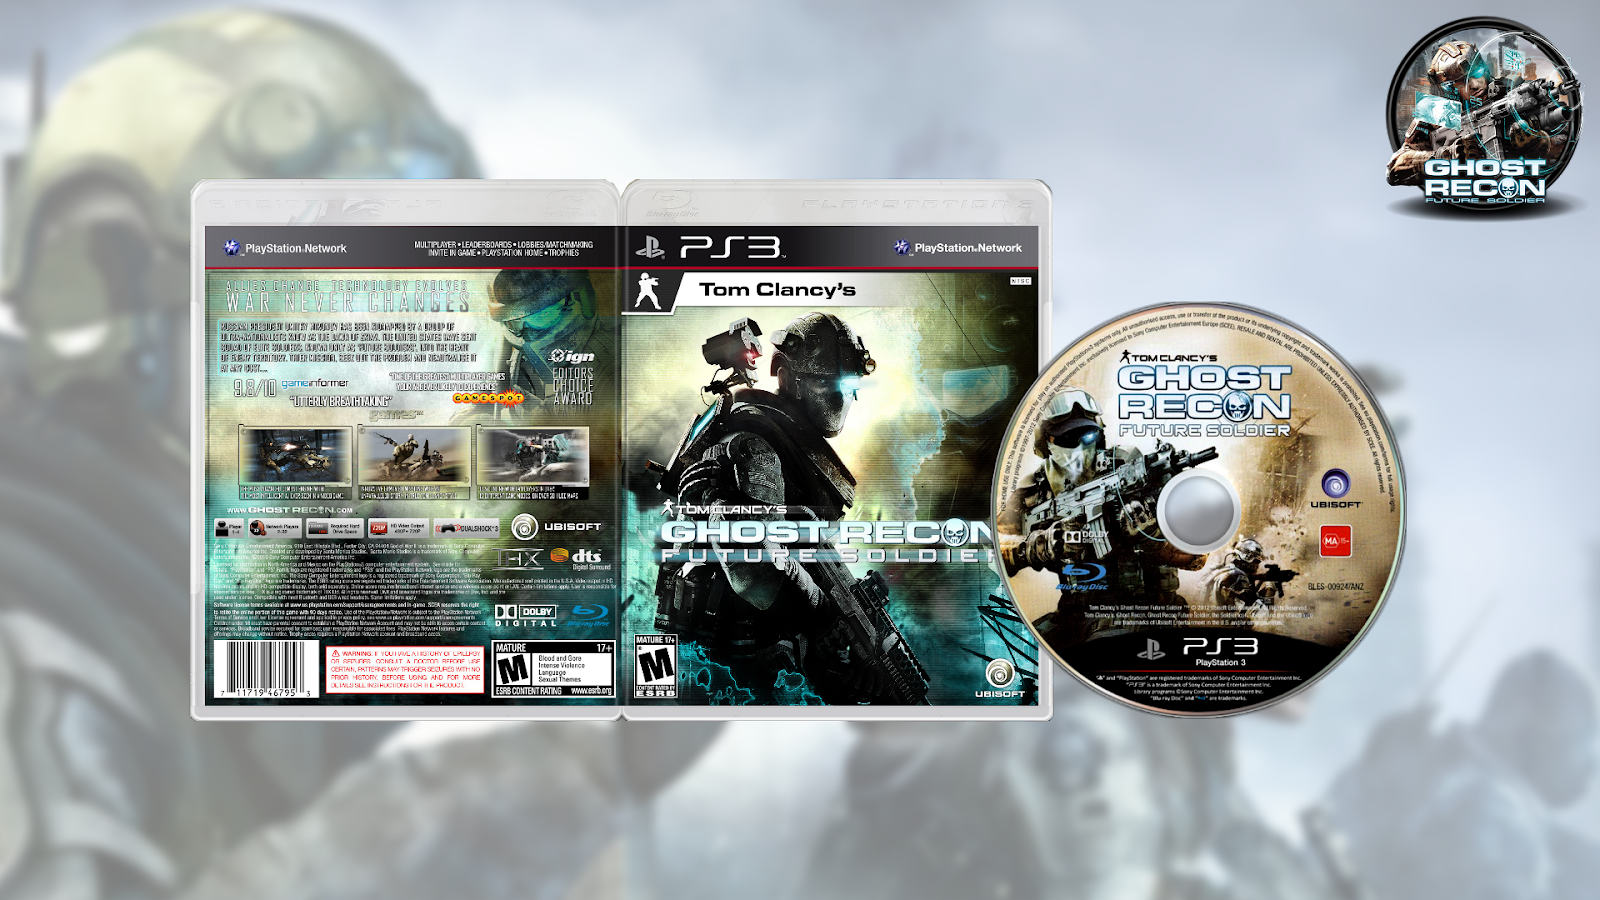 ghost recon future soldier torrent download